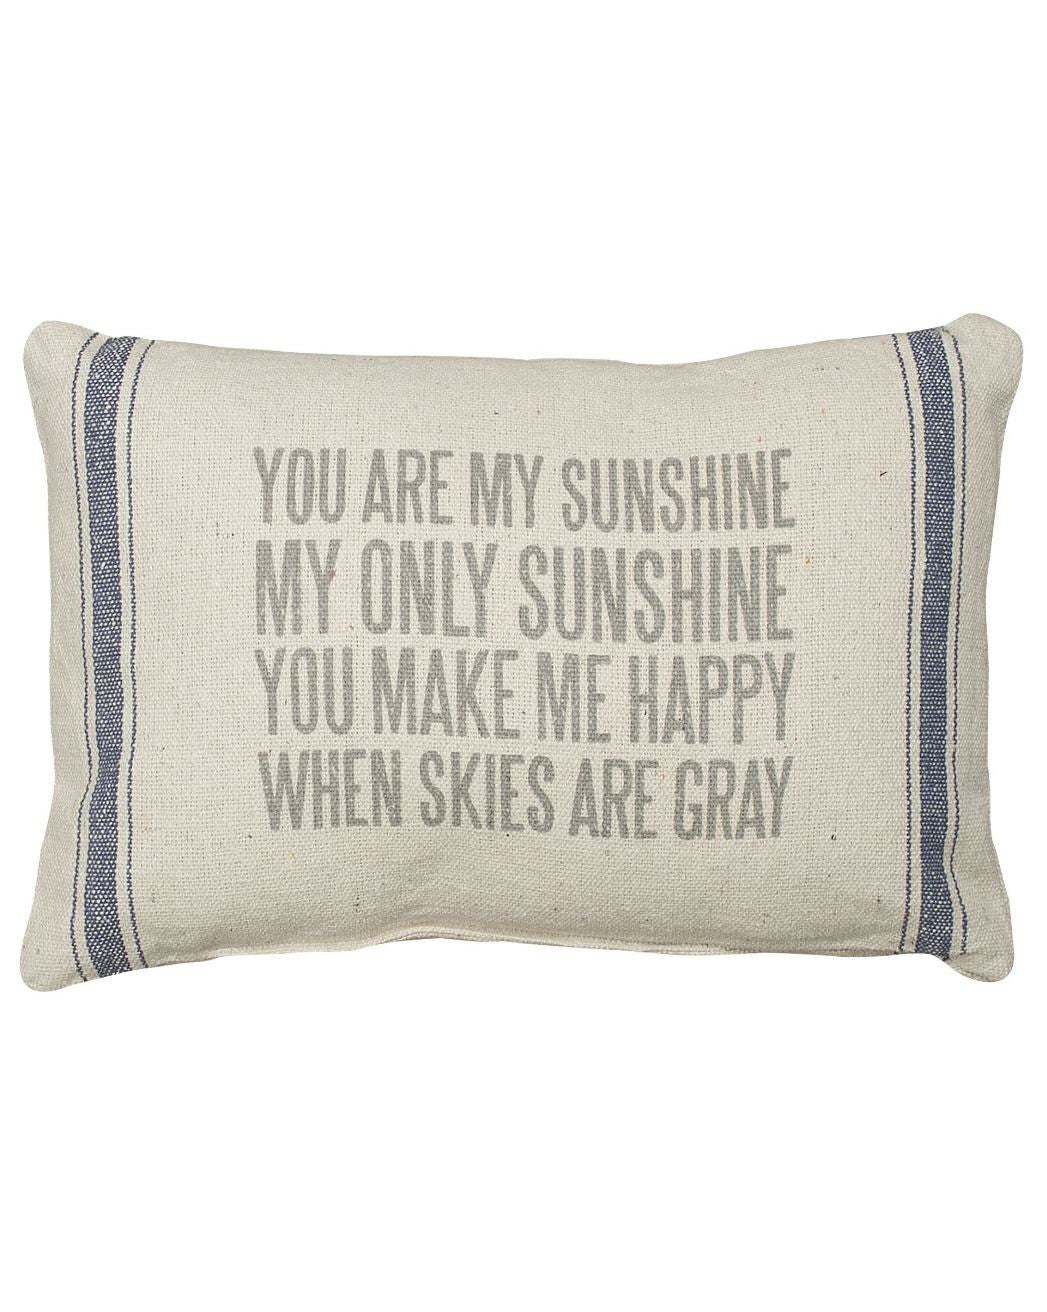 Rustic You Are My Sunshine Pillow